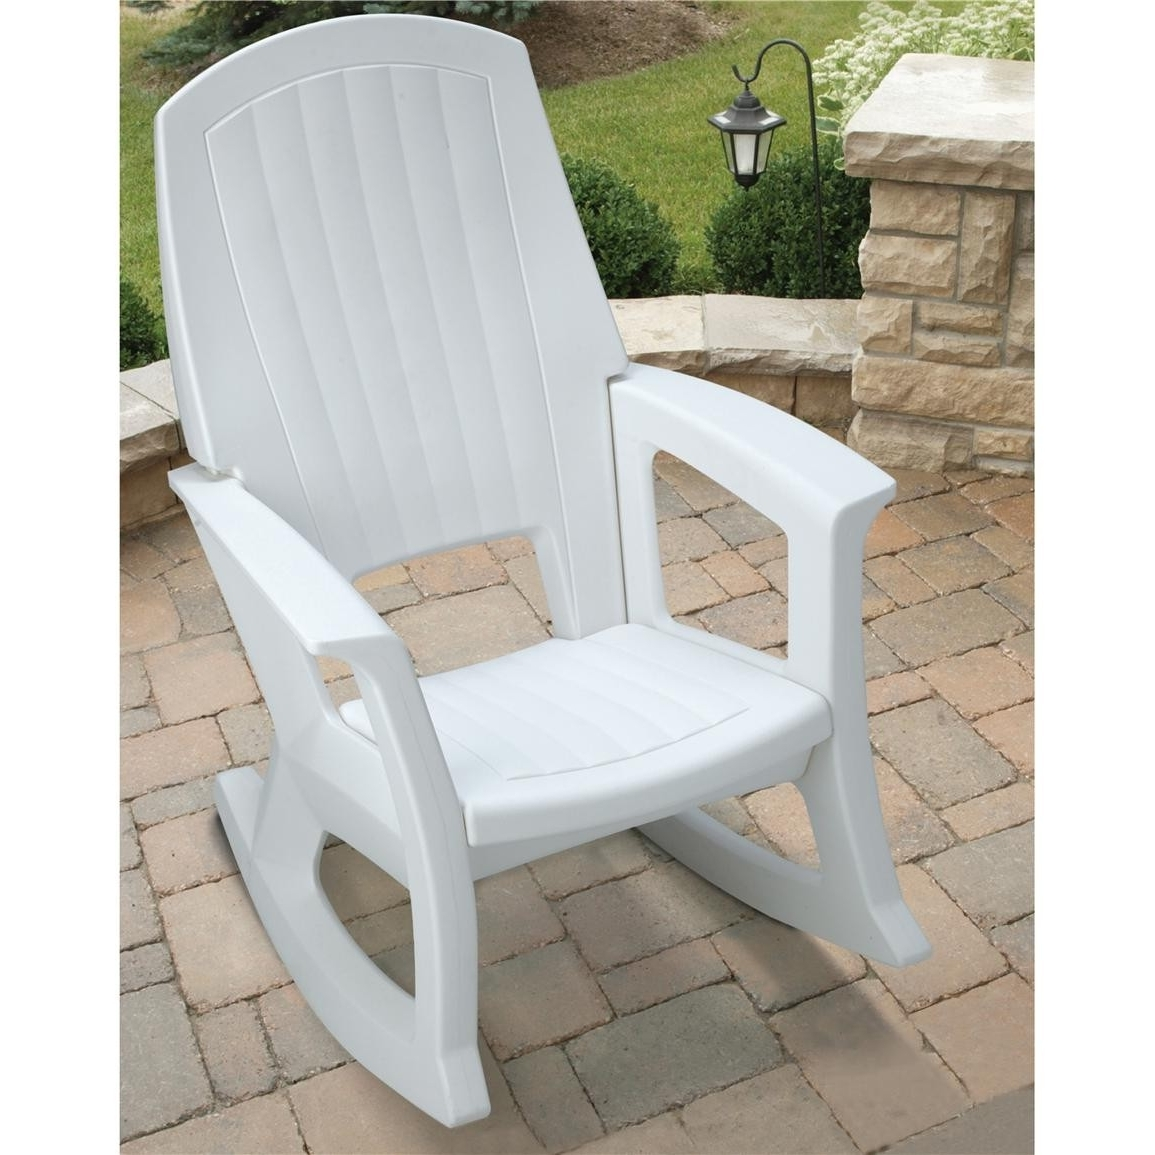 Outdoor Vinyl Rocking Chairs Regarding Most Up To Date Semco Plastics White Resin Outdoor Patio Rocking Chair Semw Rural (View 10 of 15)